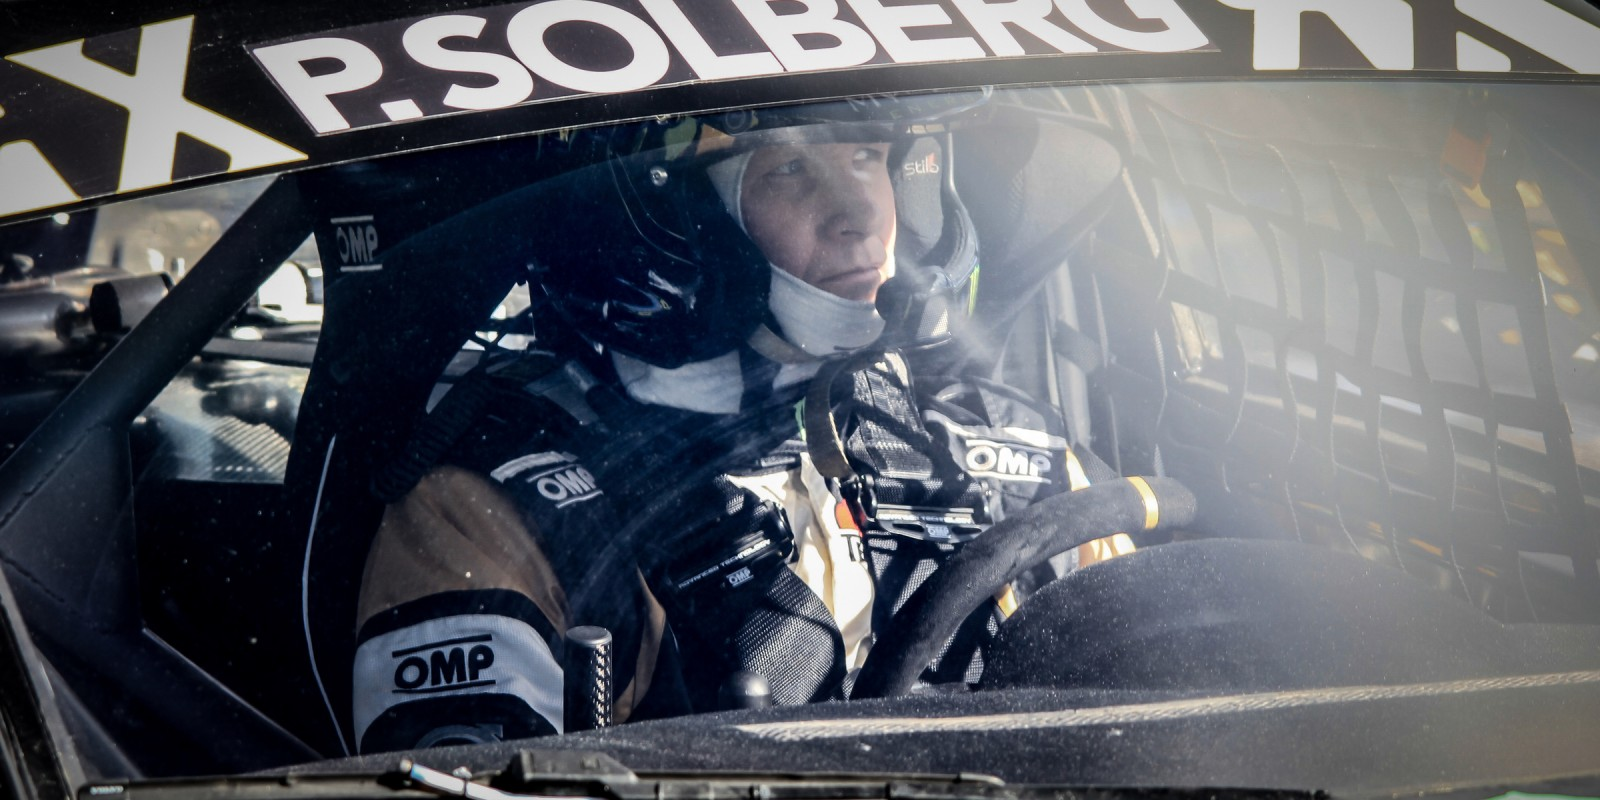 Petter Solberg at the World Rallycross of Germany hosted in Hockenheim